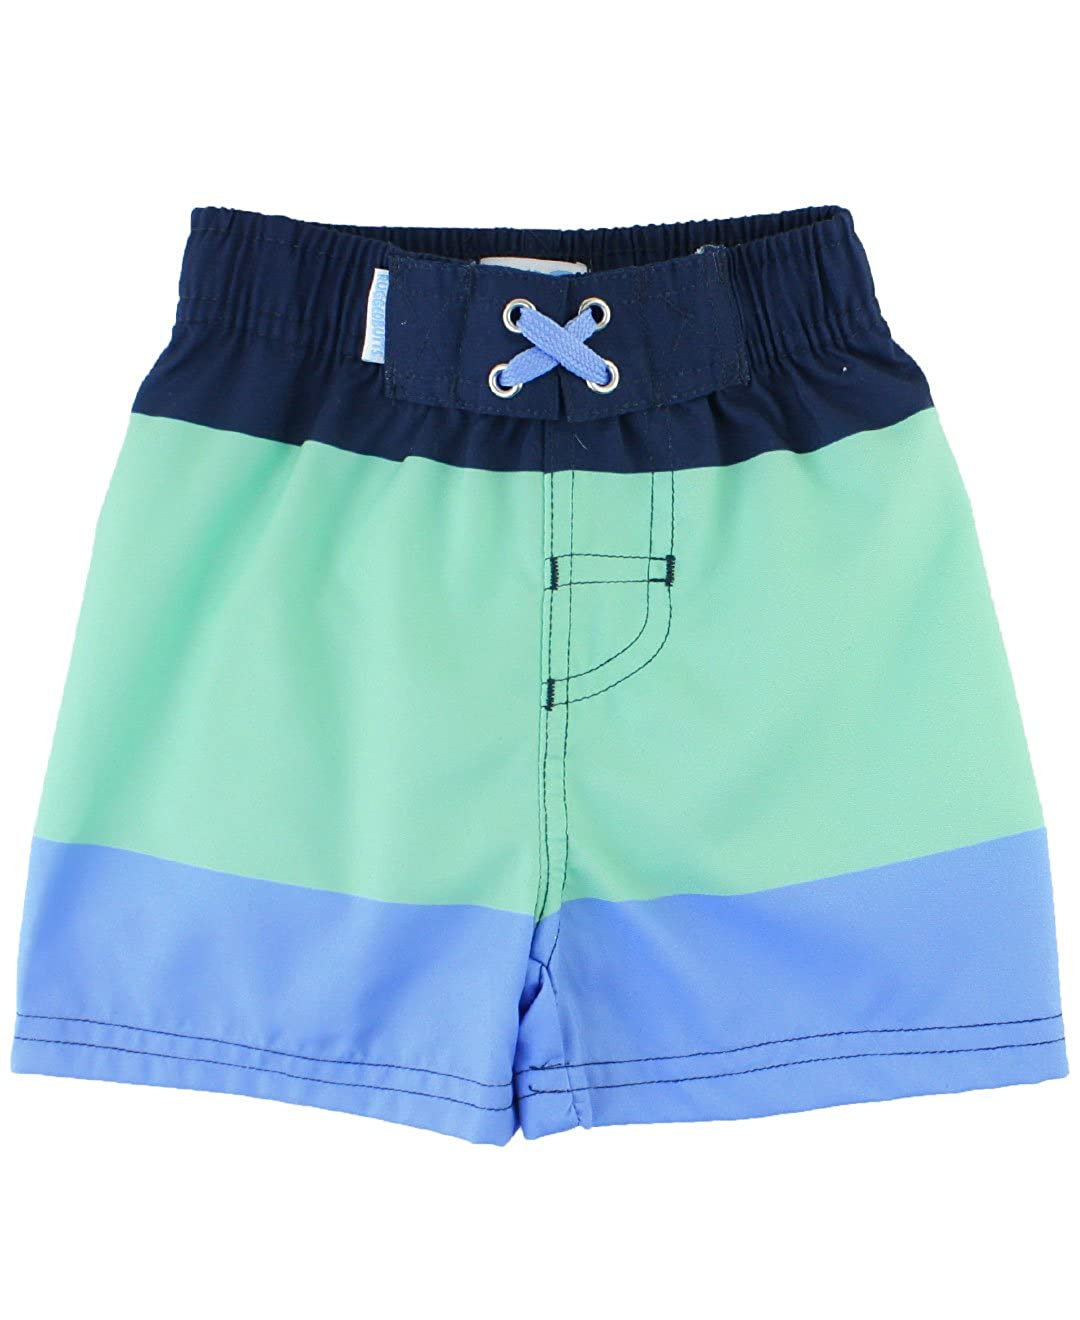 2d05fc2f28fe5 A drawstring waist and comfortable stretchy waist will have him splashing  around all summer long in these adorable trunks.